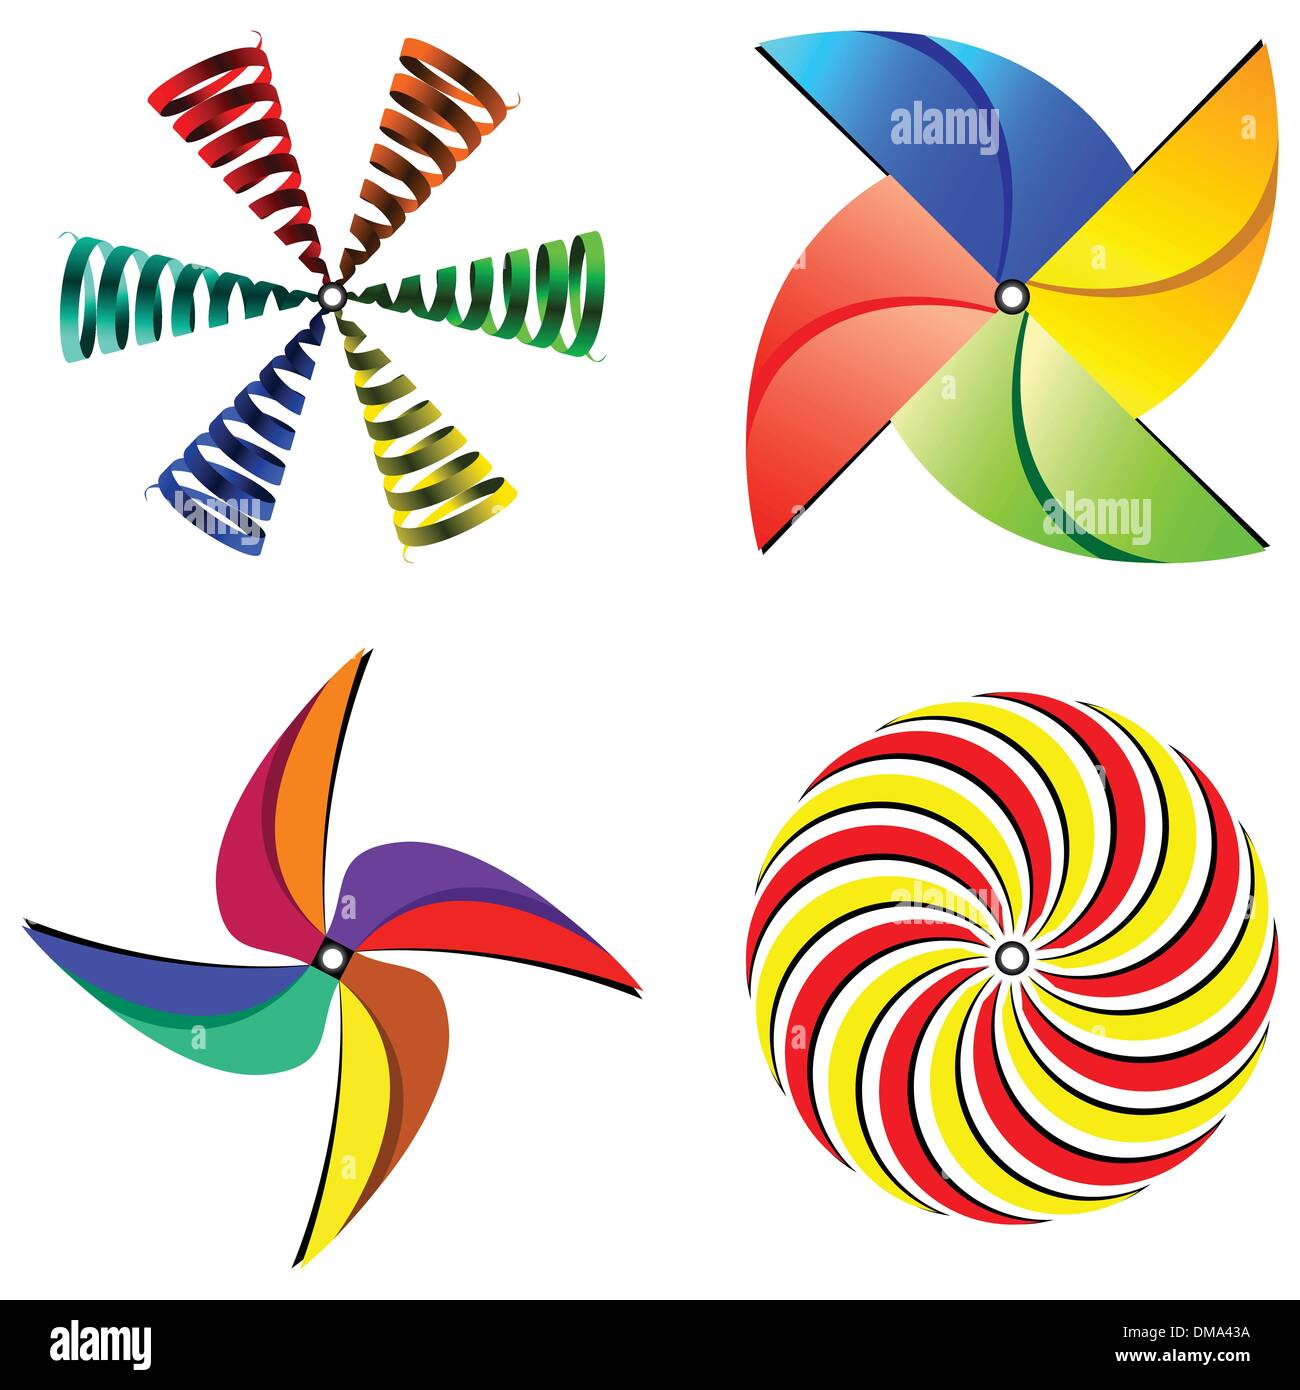 wind mills collection - Stock Vector